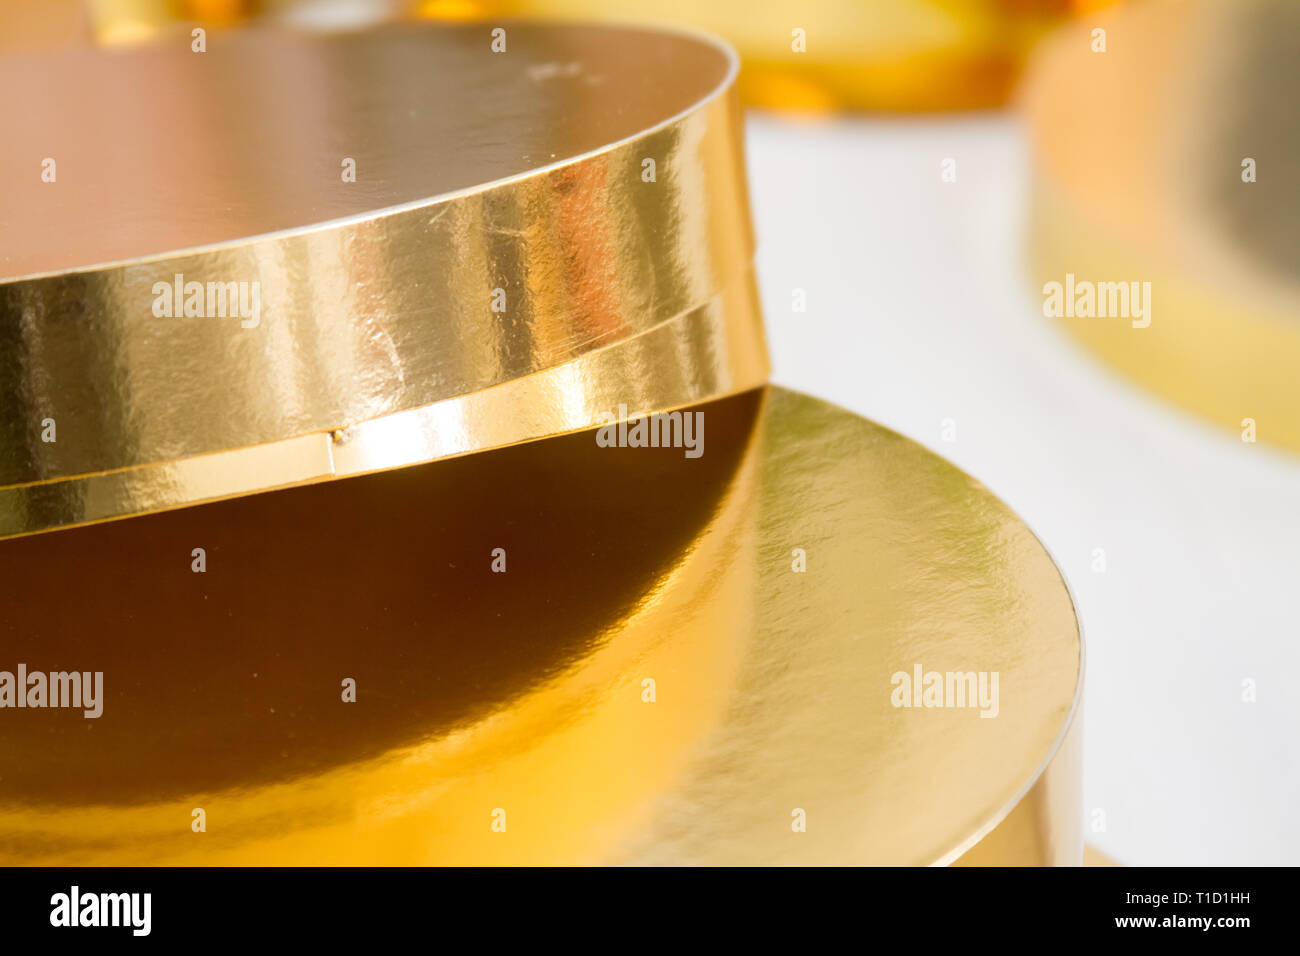 Gold and white coasters for cakes, rings for decorating cakes, baking tools, selektive focus - Stock Image